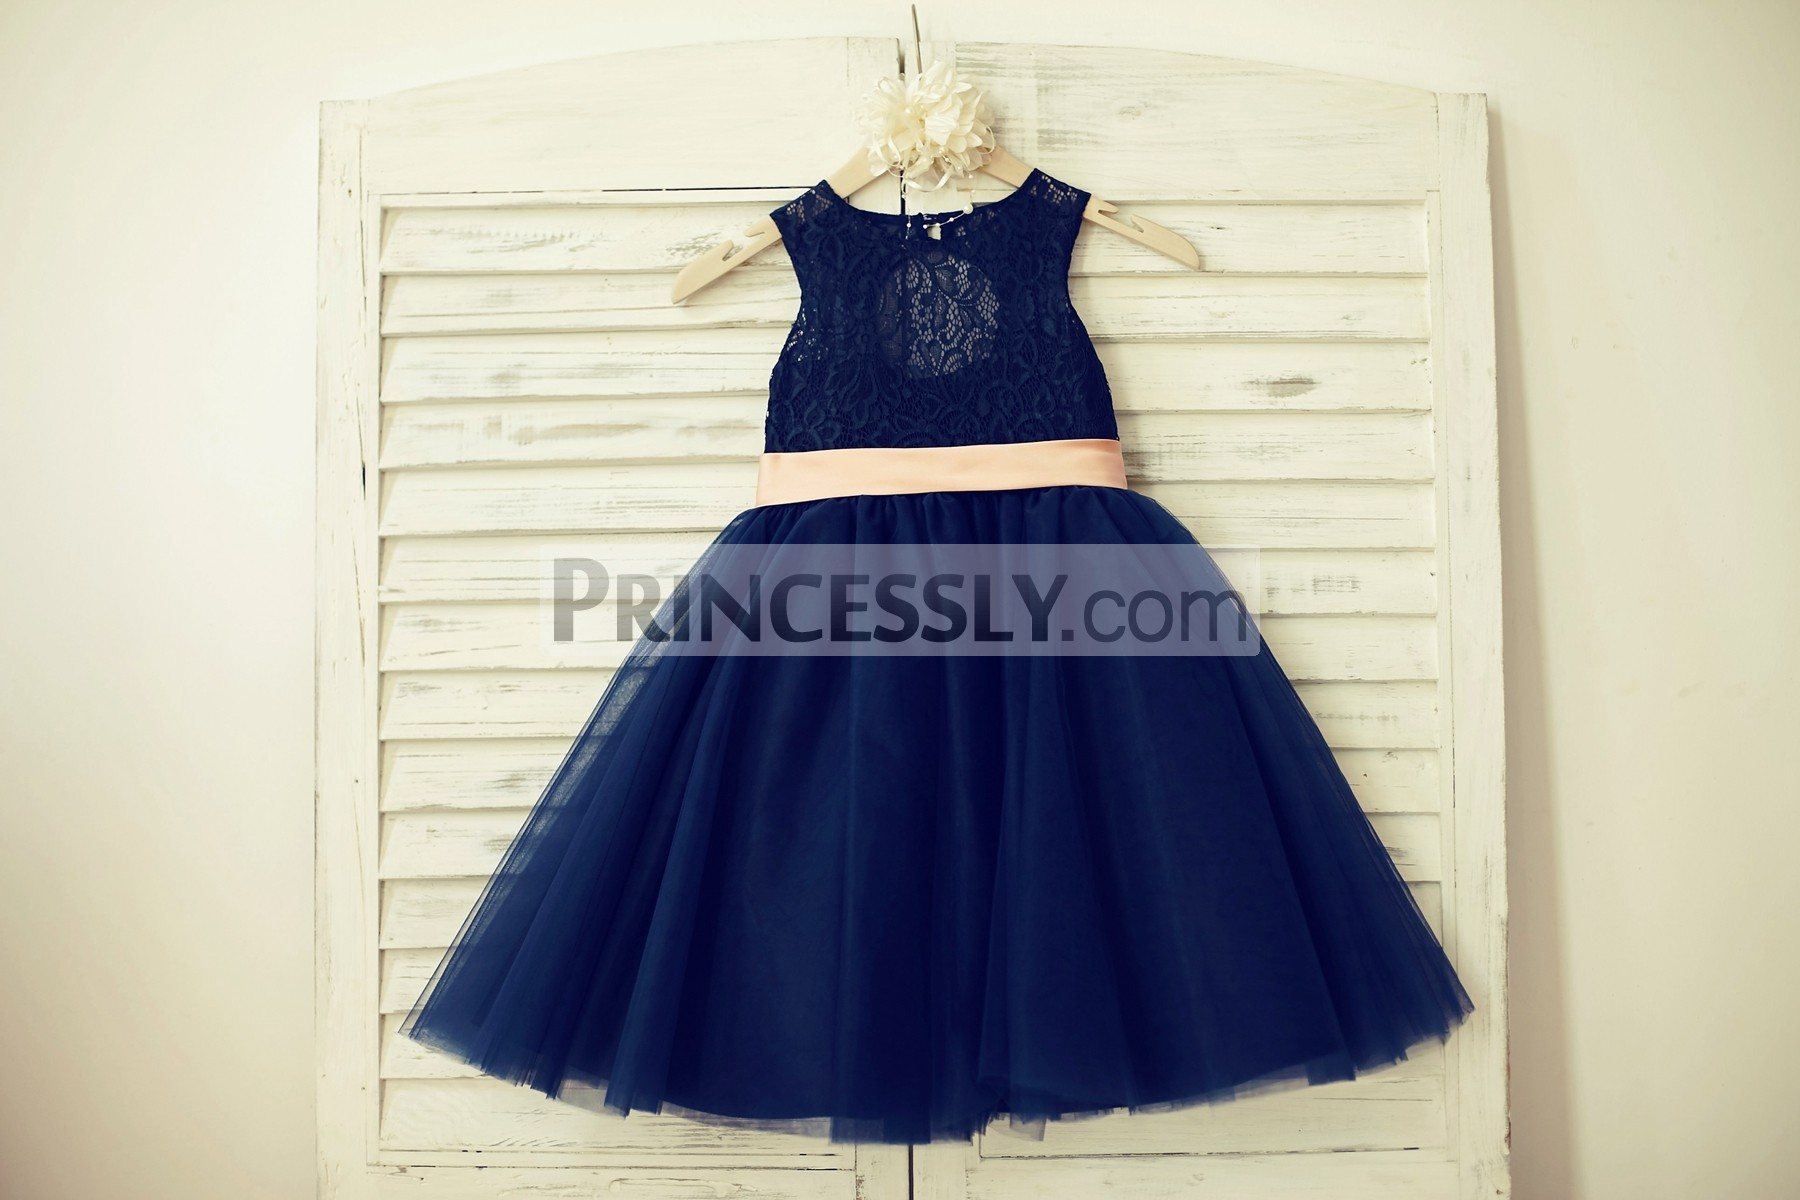 Scoop neck sleeveless navy blue lace tulle flower girl dress